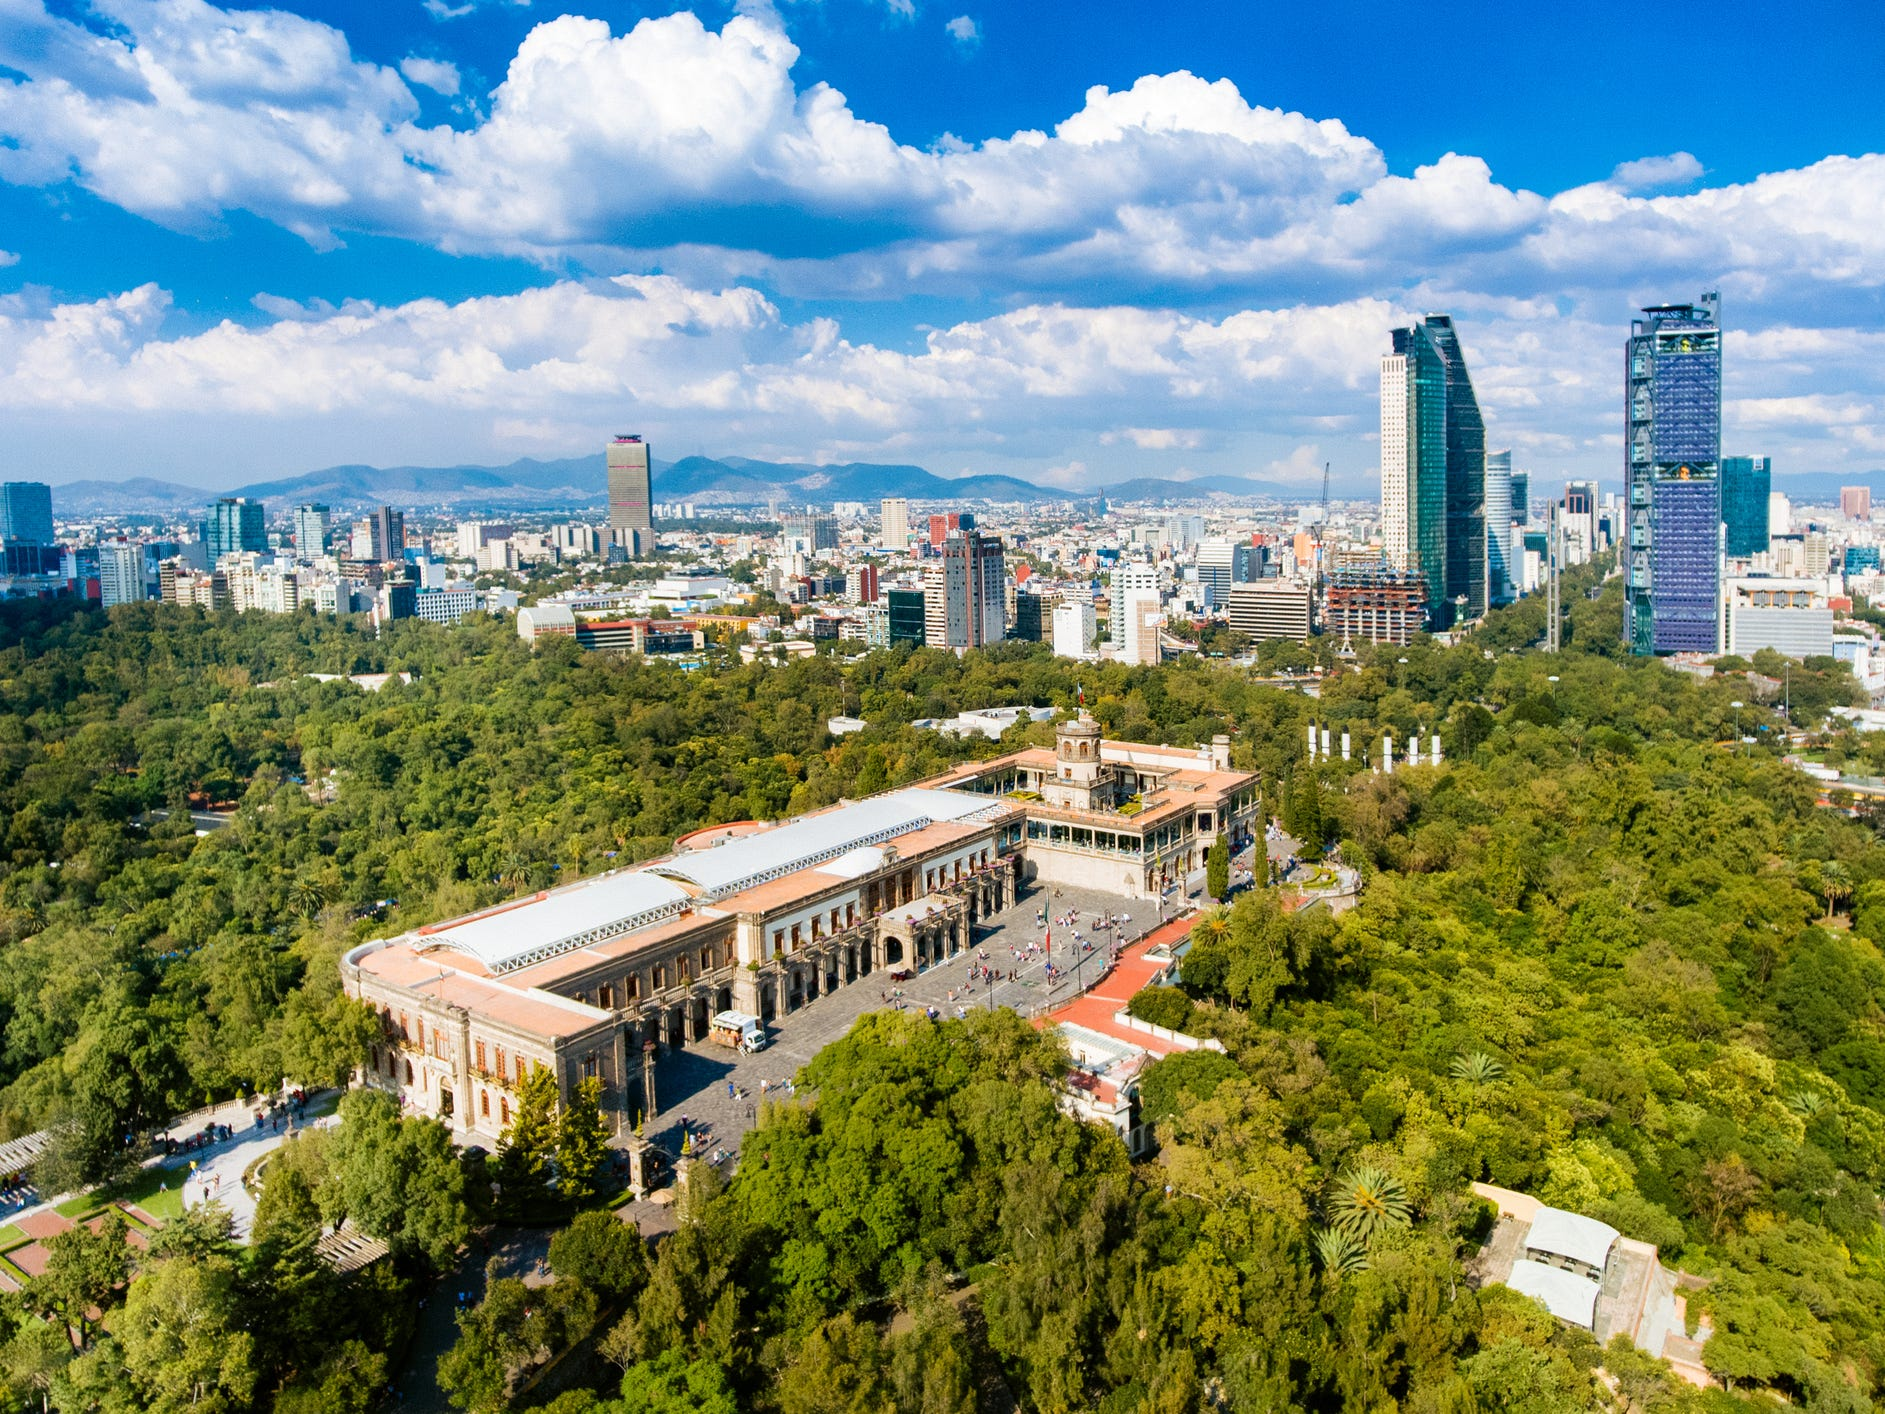 Chapultepec Castle in Mexico City: Unlike other beautiful castles in North America, Mexico City's Chapultepec Castle was once home to real royalty. Built during the colonial period by the viceroy of New Spain in 1833, the castle has had an eventful history.